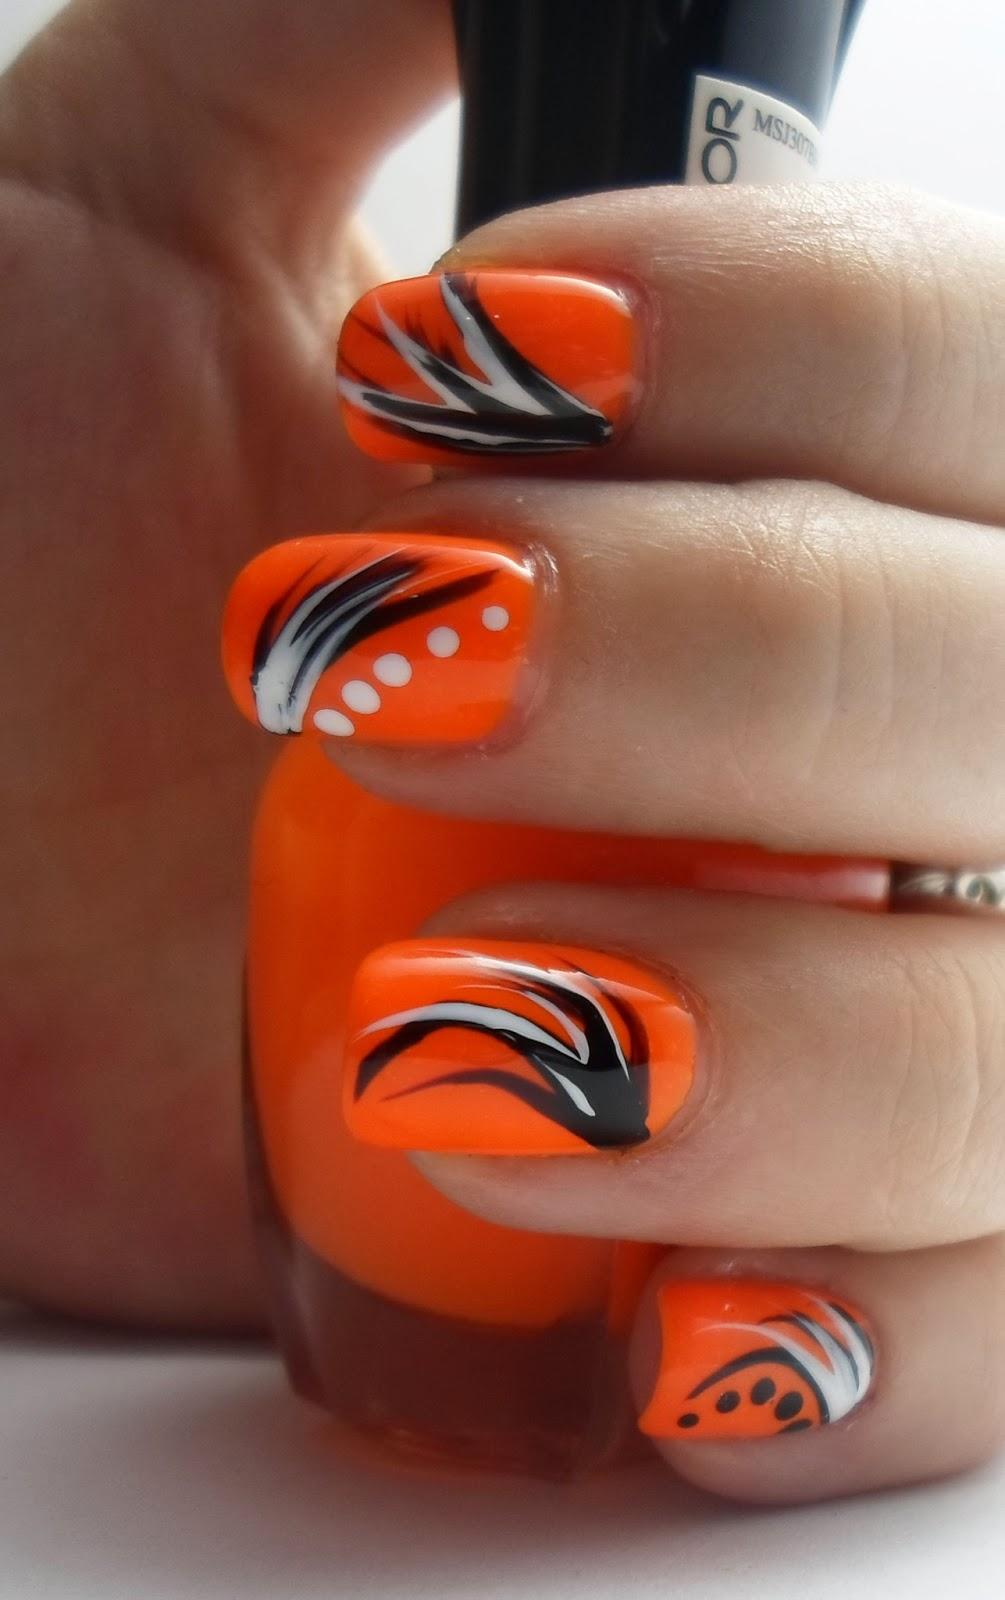 Beautiful Orange Nail Art With Black And White Swirls Design